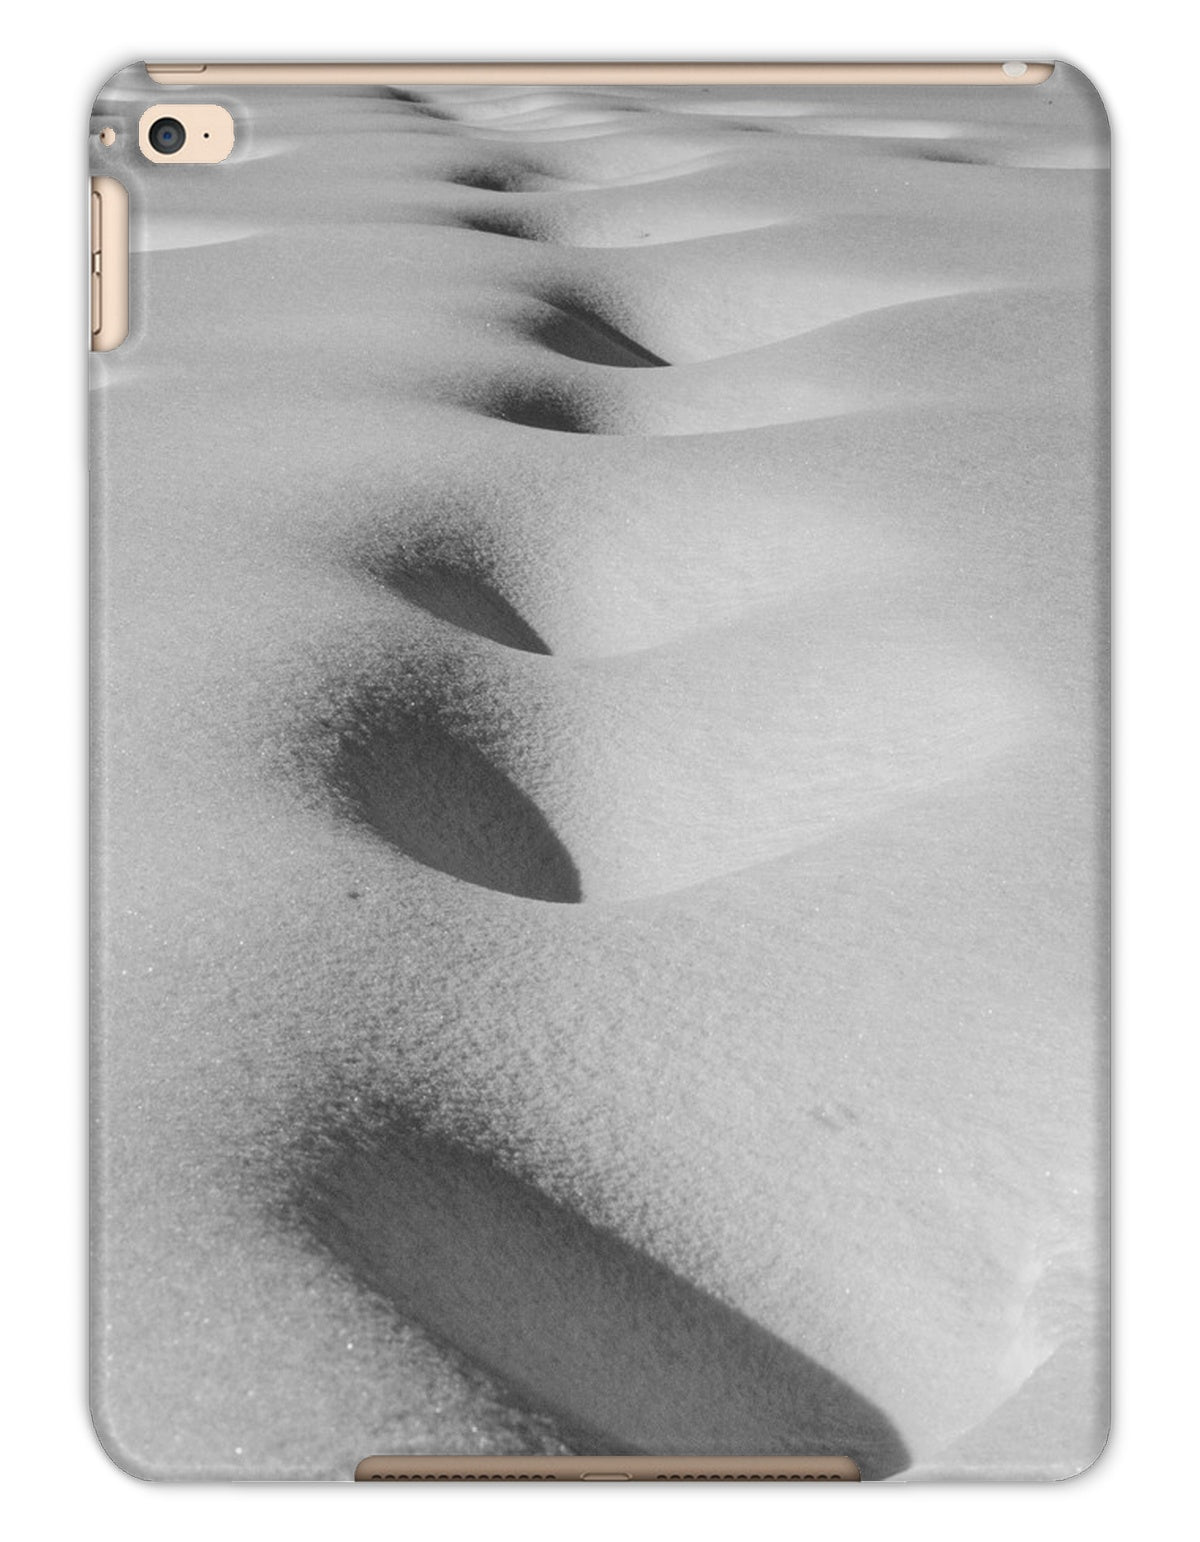 SnowScape Tablet Cases